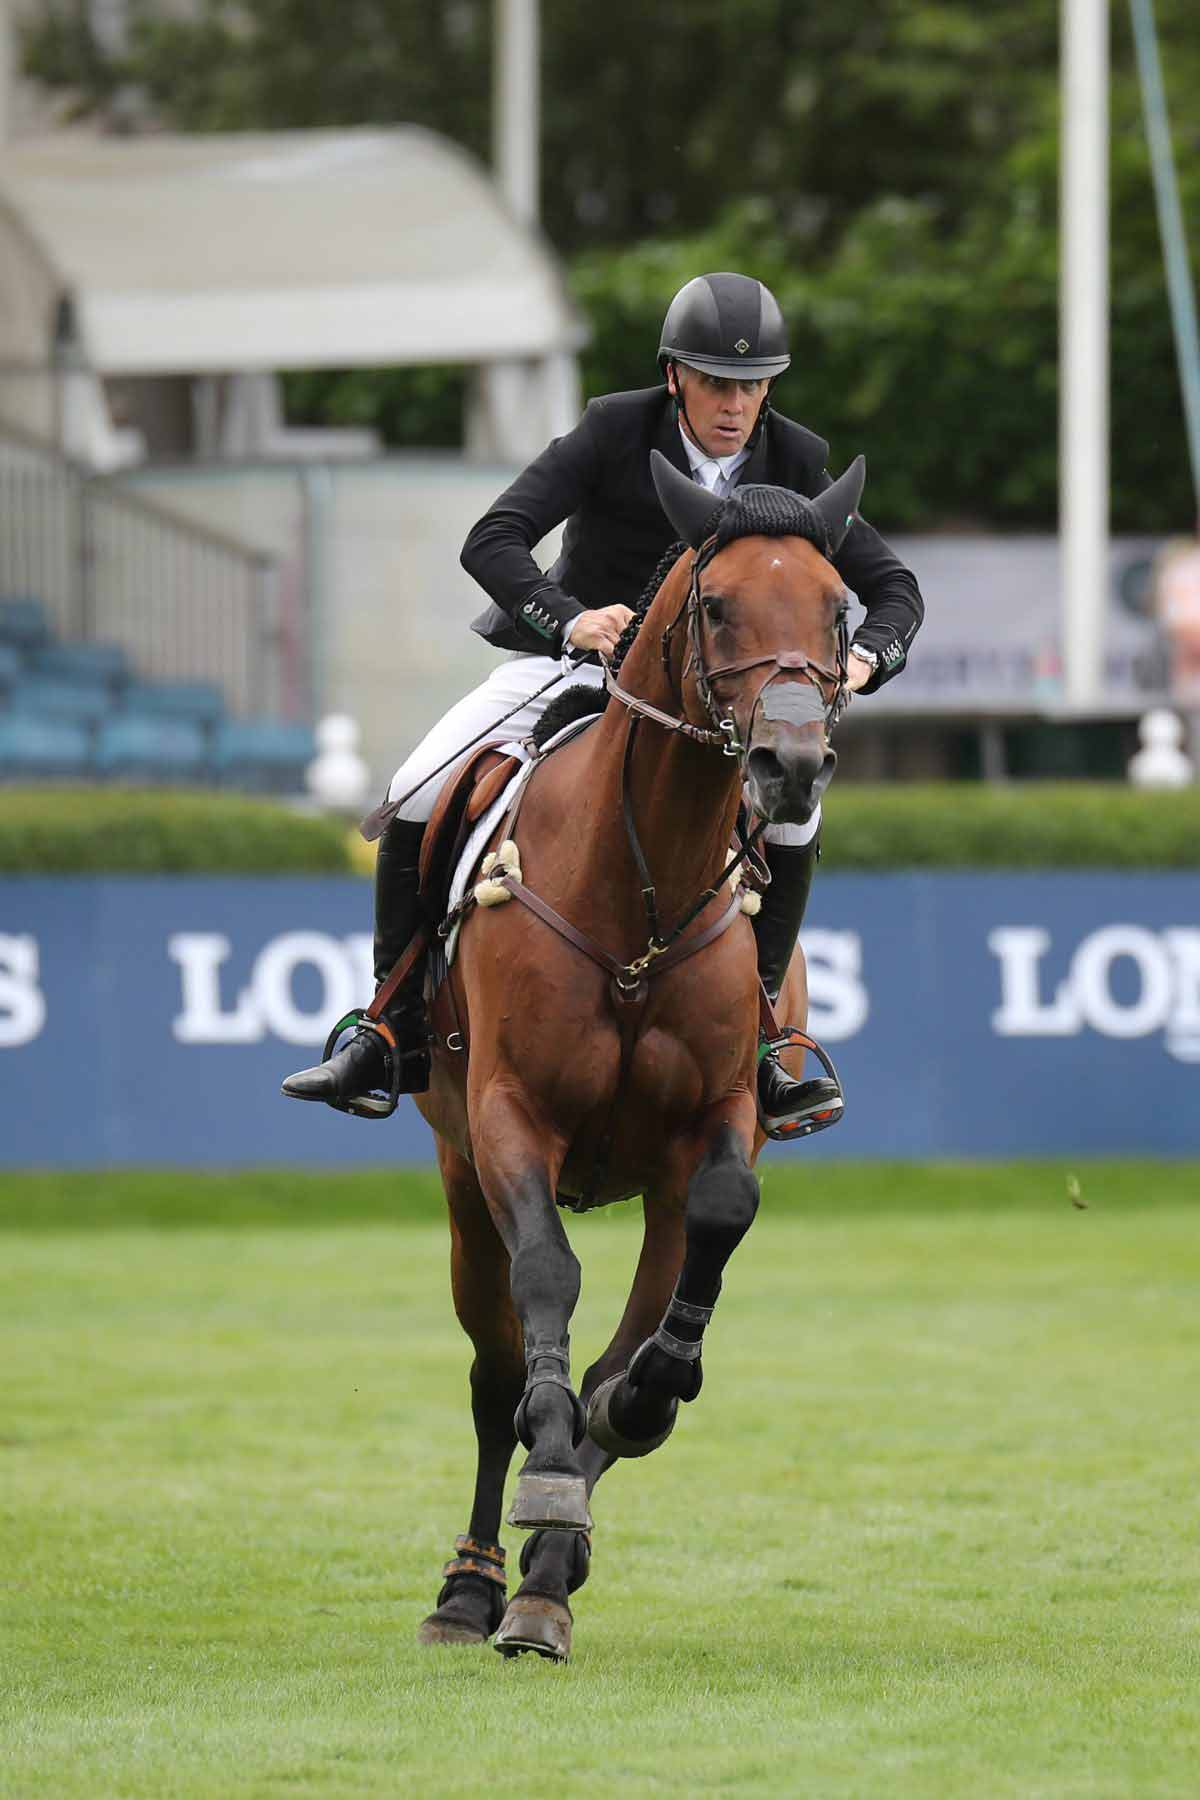 Shane Breen claims win on final day at Royal Windsor